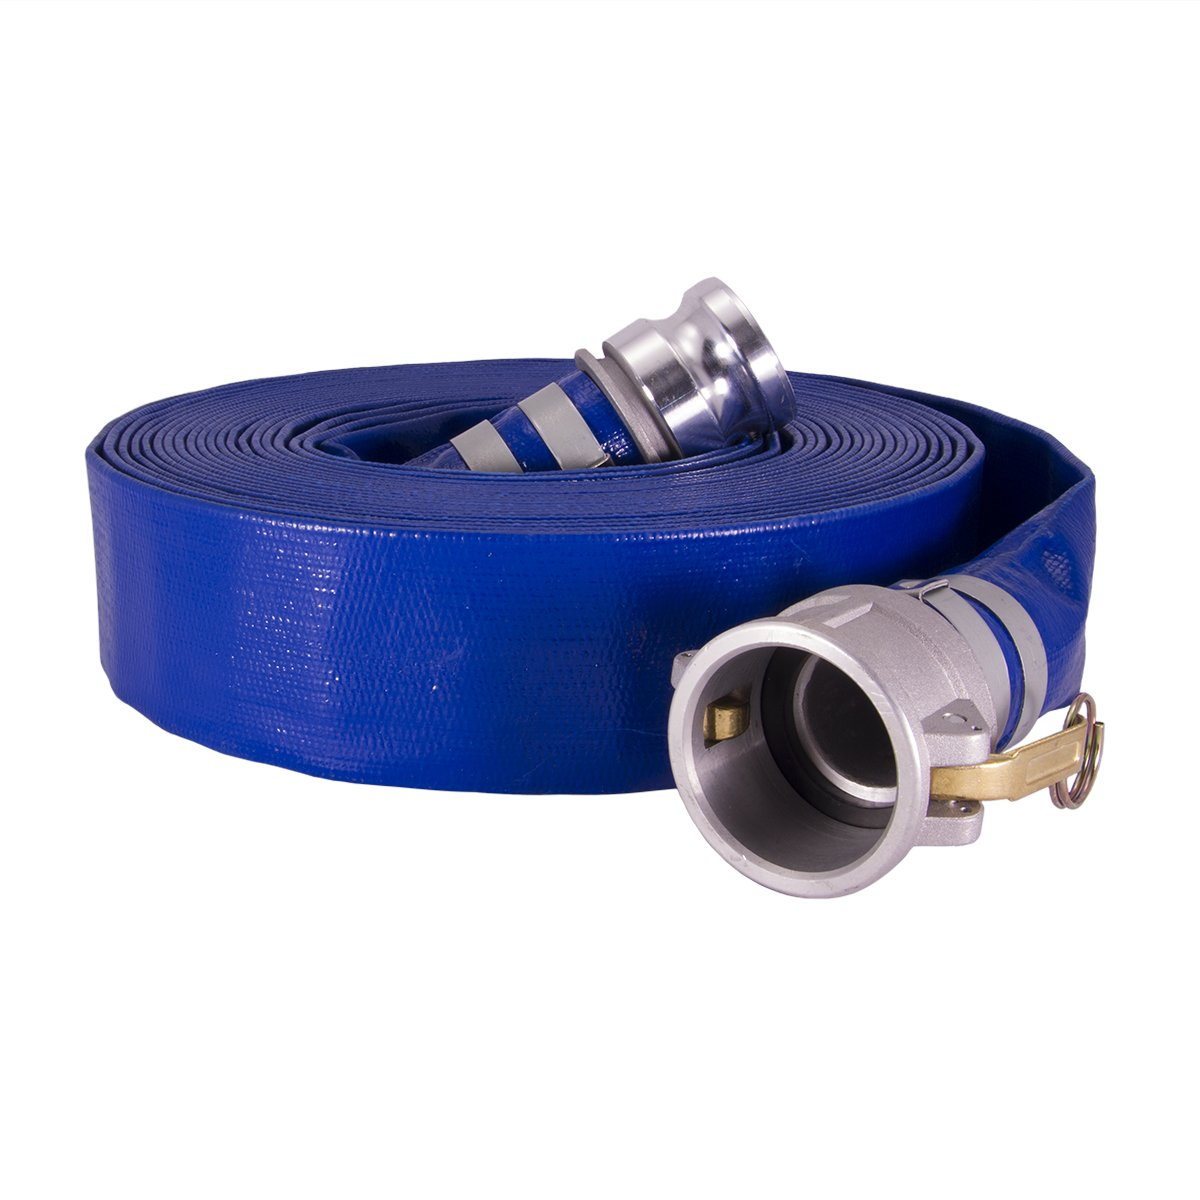 Anderson Process 1-1/2' X 50' Layflat PVC Water Discharge Hose Assembly w/Cam Lock Fittings